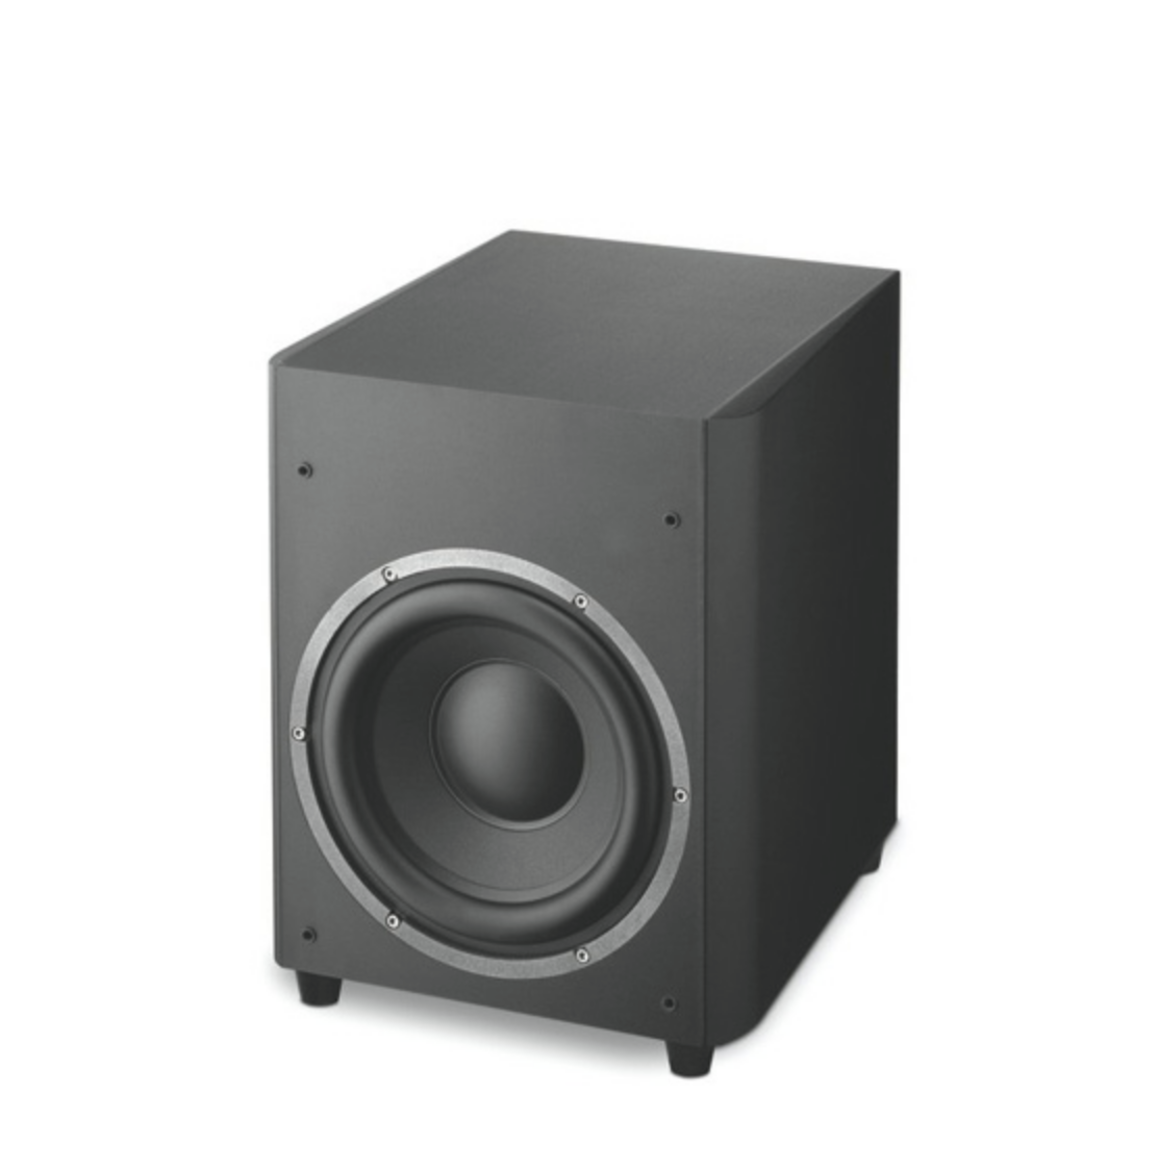 Subwoofer Focal Sub 300 P 300w Rms 110v